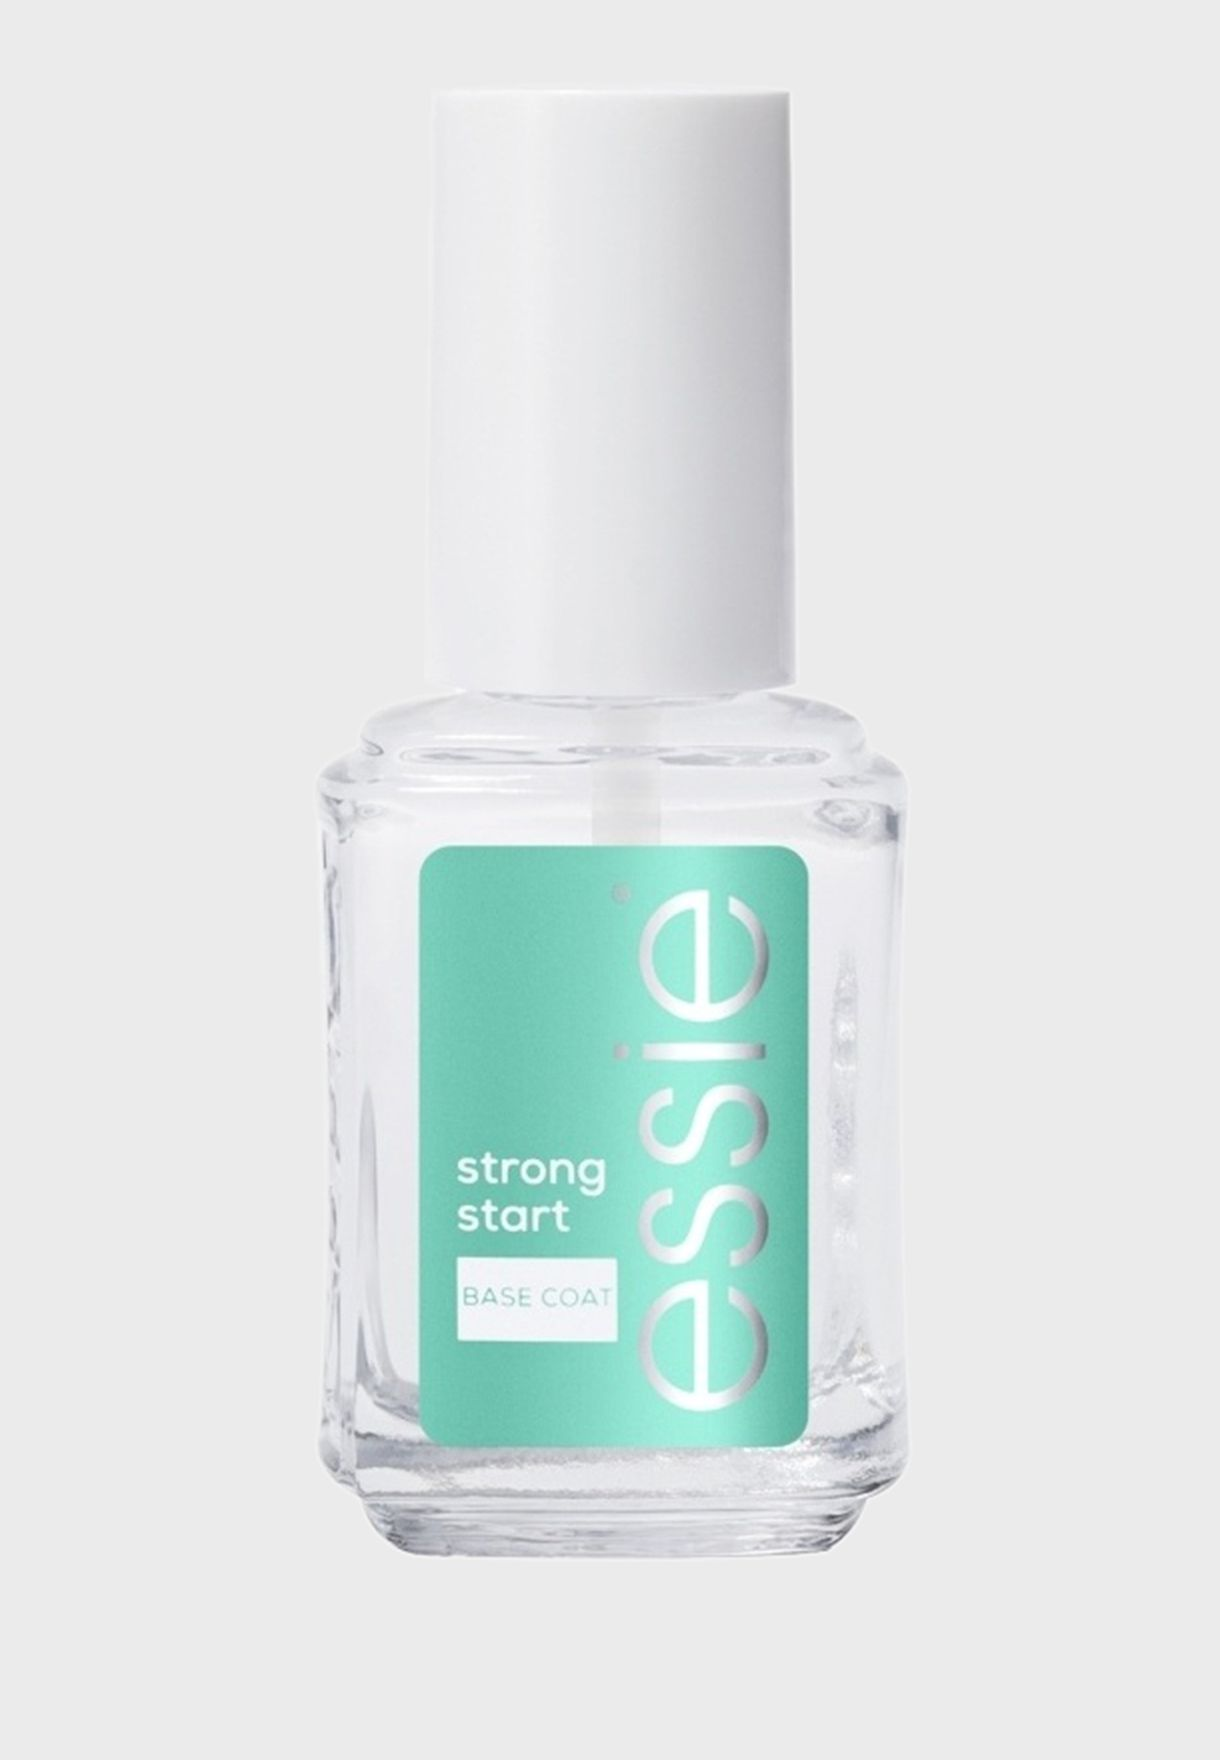 Base Coat Nail Polish - Strong Start